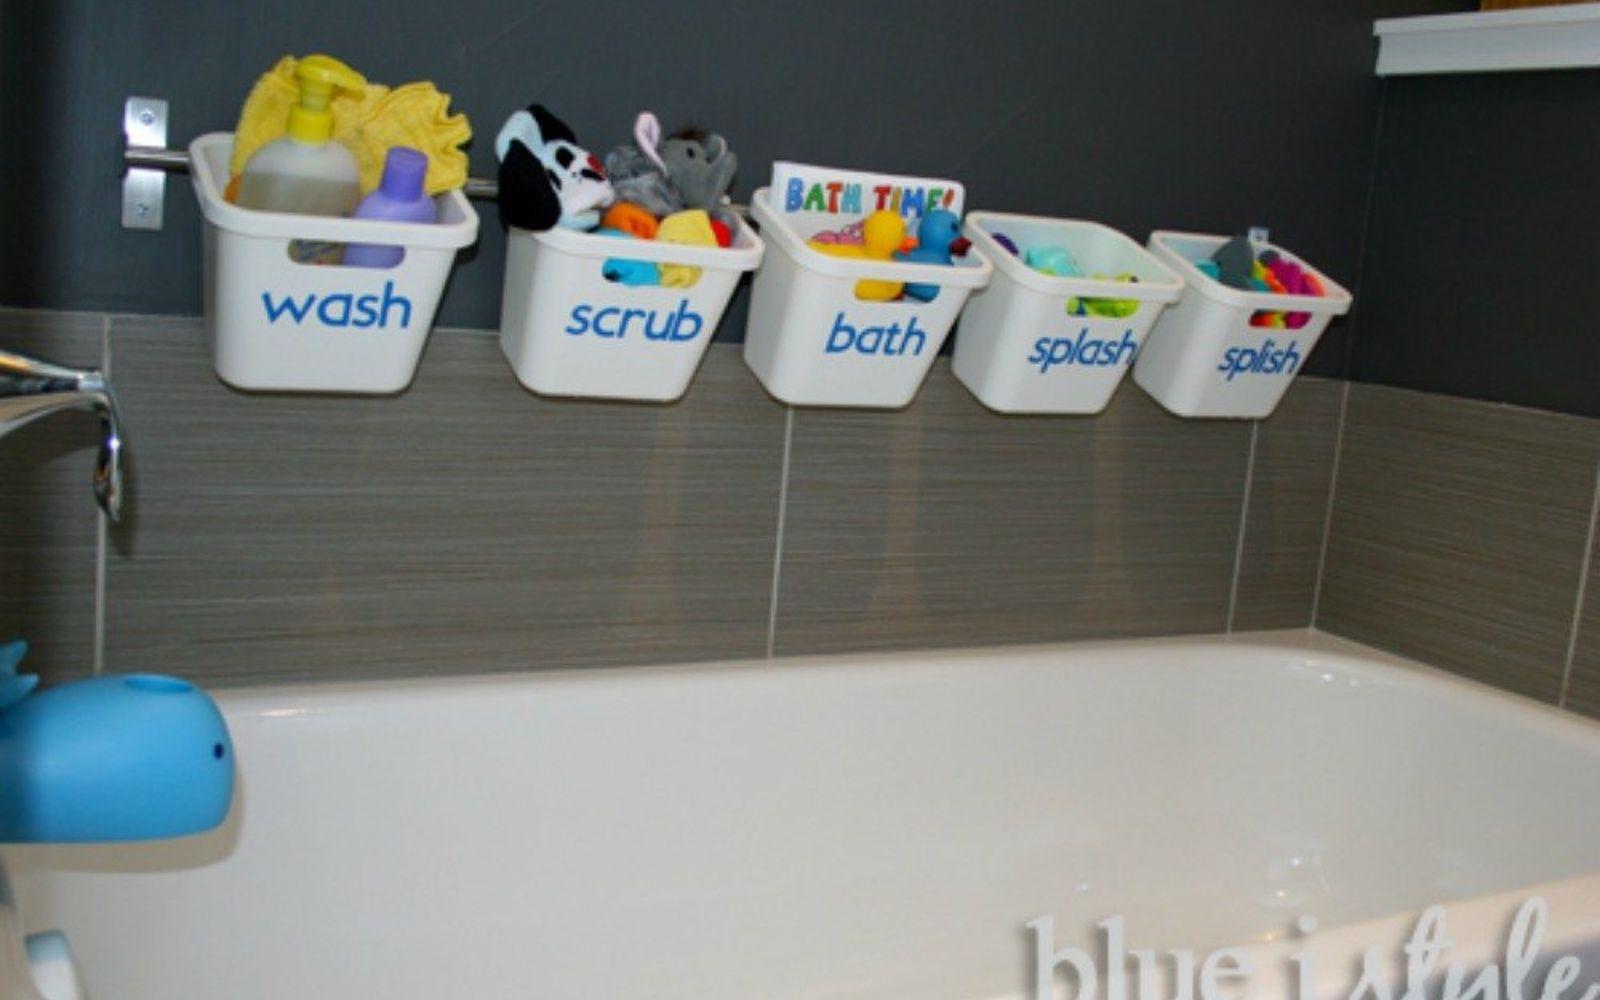 s give your kids the coolest bathroom with these 13 jaw dropping ideas, bathroom ideas, Make it all about bathtime